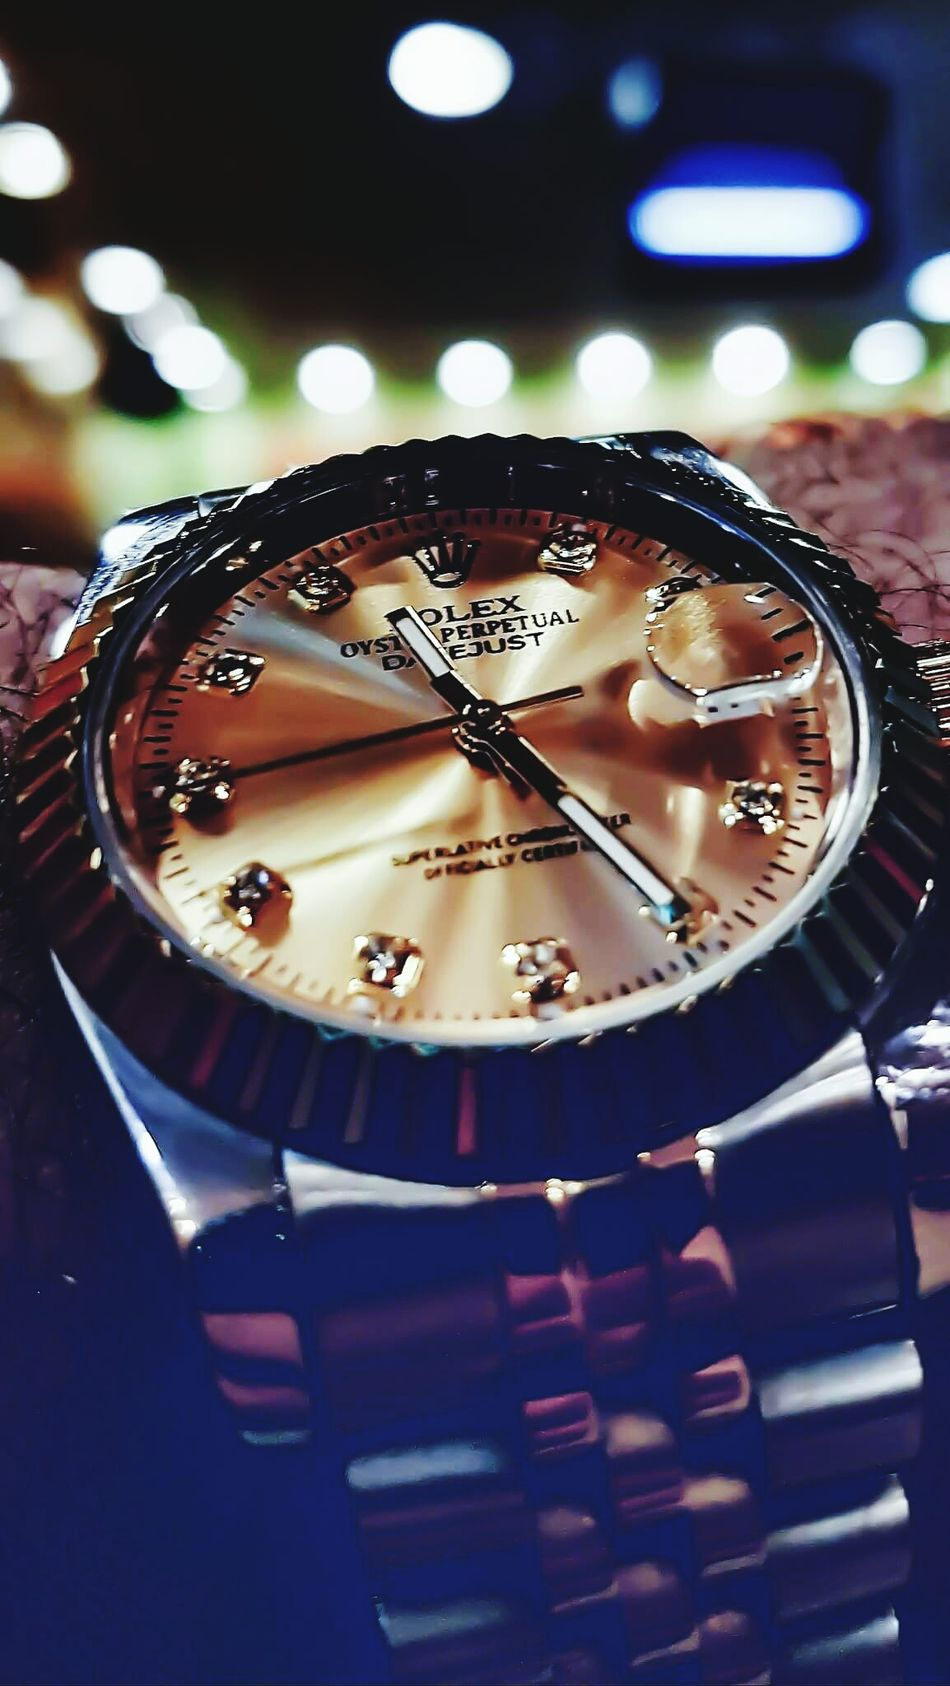 Watch The Clock Rolex Watch Rolex Rolexwatch No People Clock Rolexwatches Rolex Time Luxury Minute Hand Time Close-up Clock Face Indoors  Day